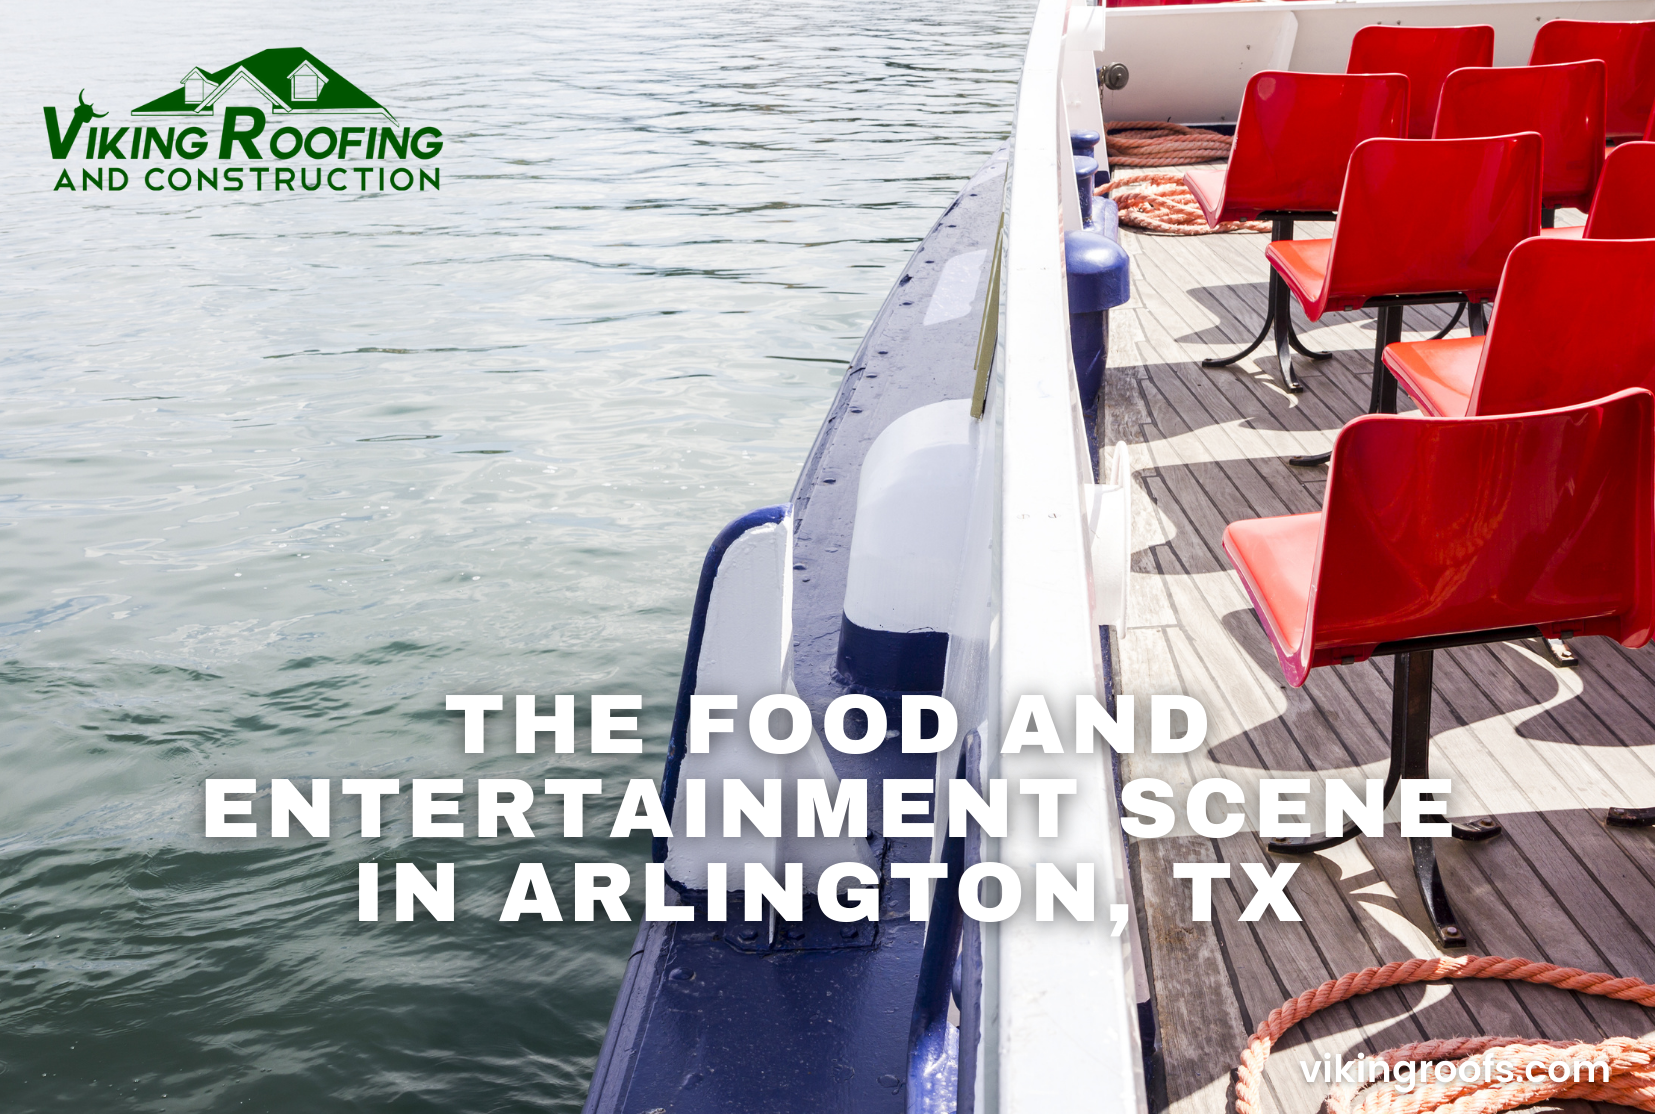 Viking Roofing - The Food and Entertainment Scene in Arlington, TX